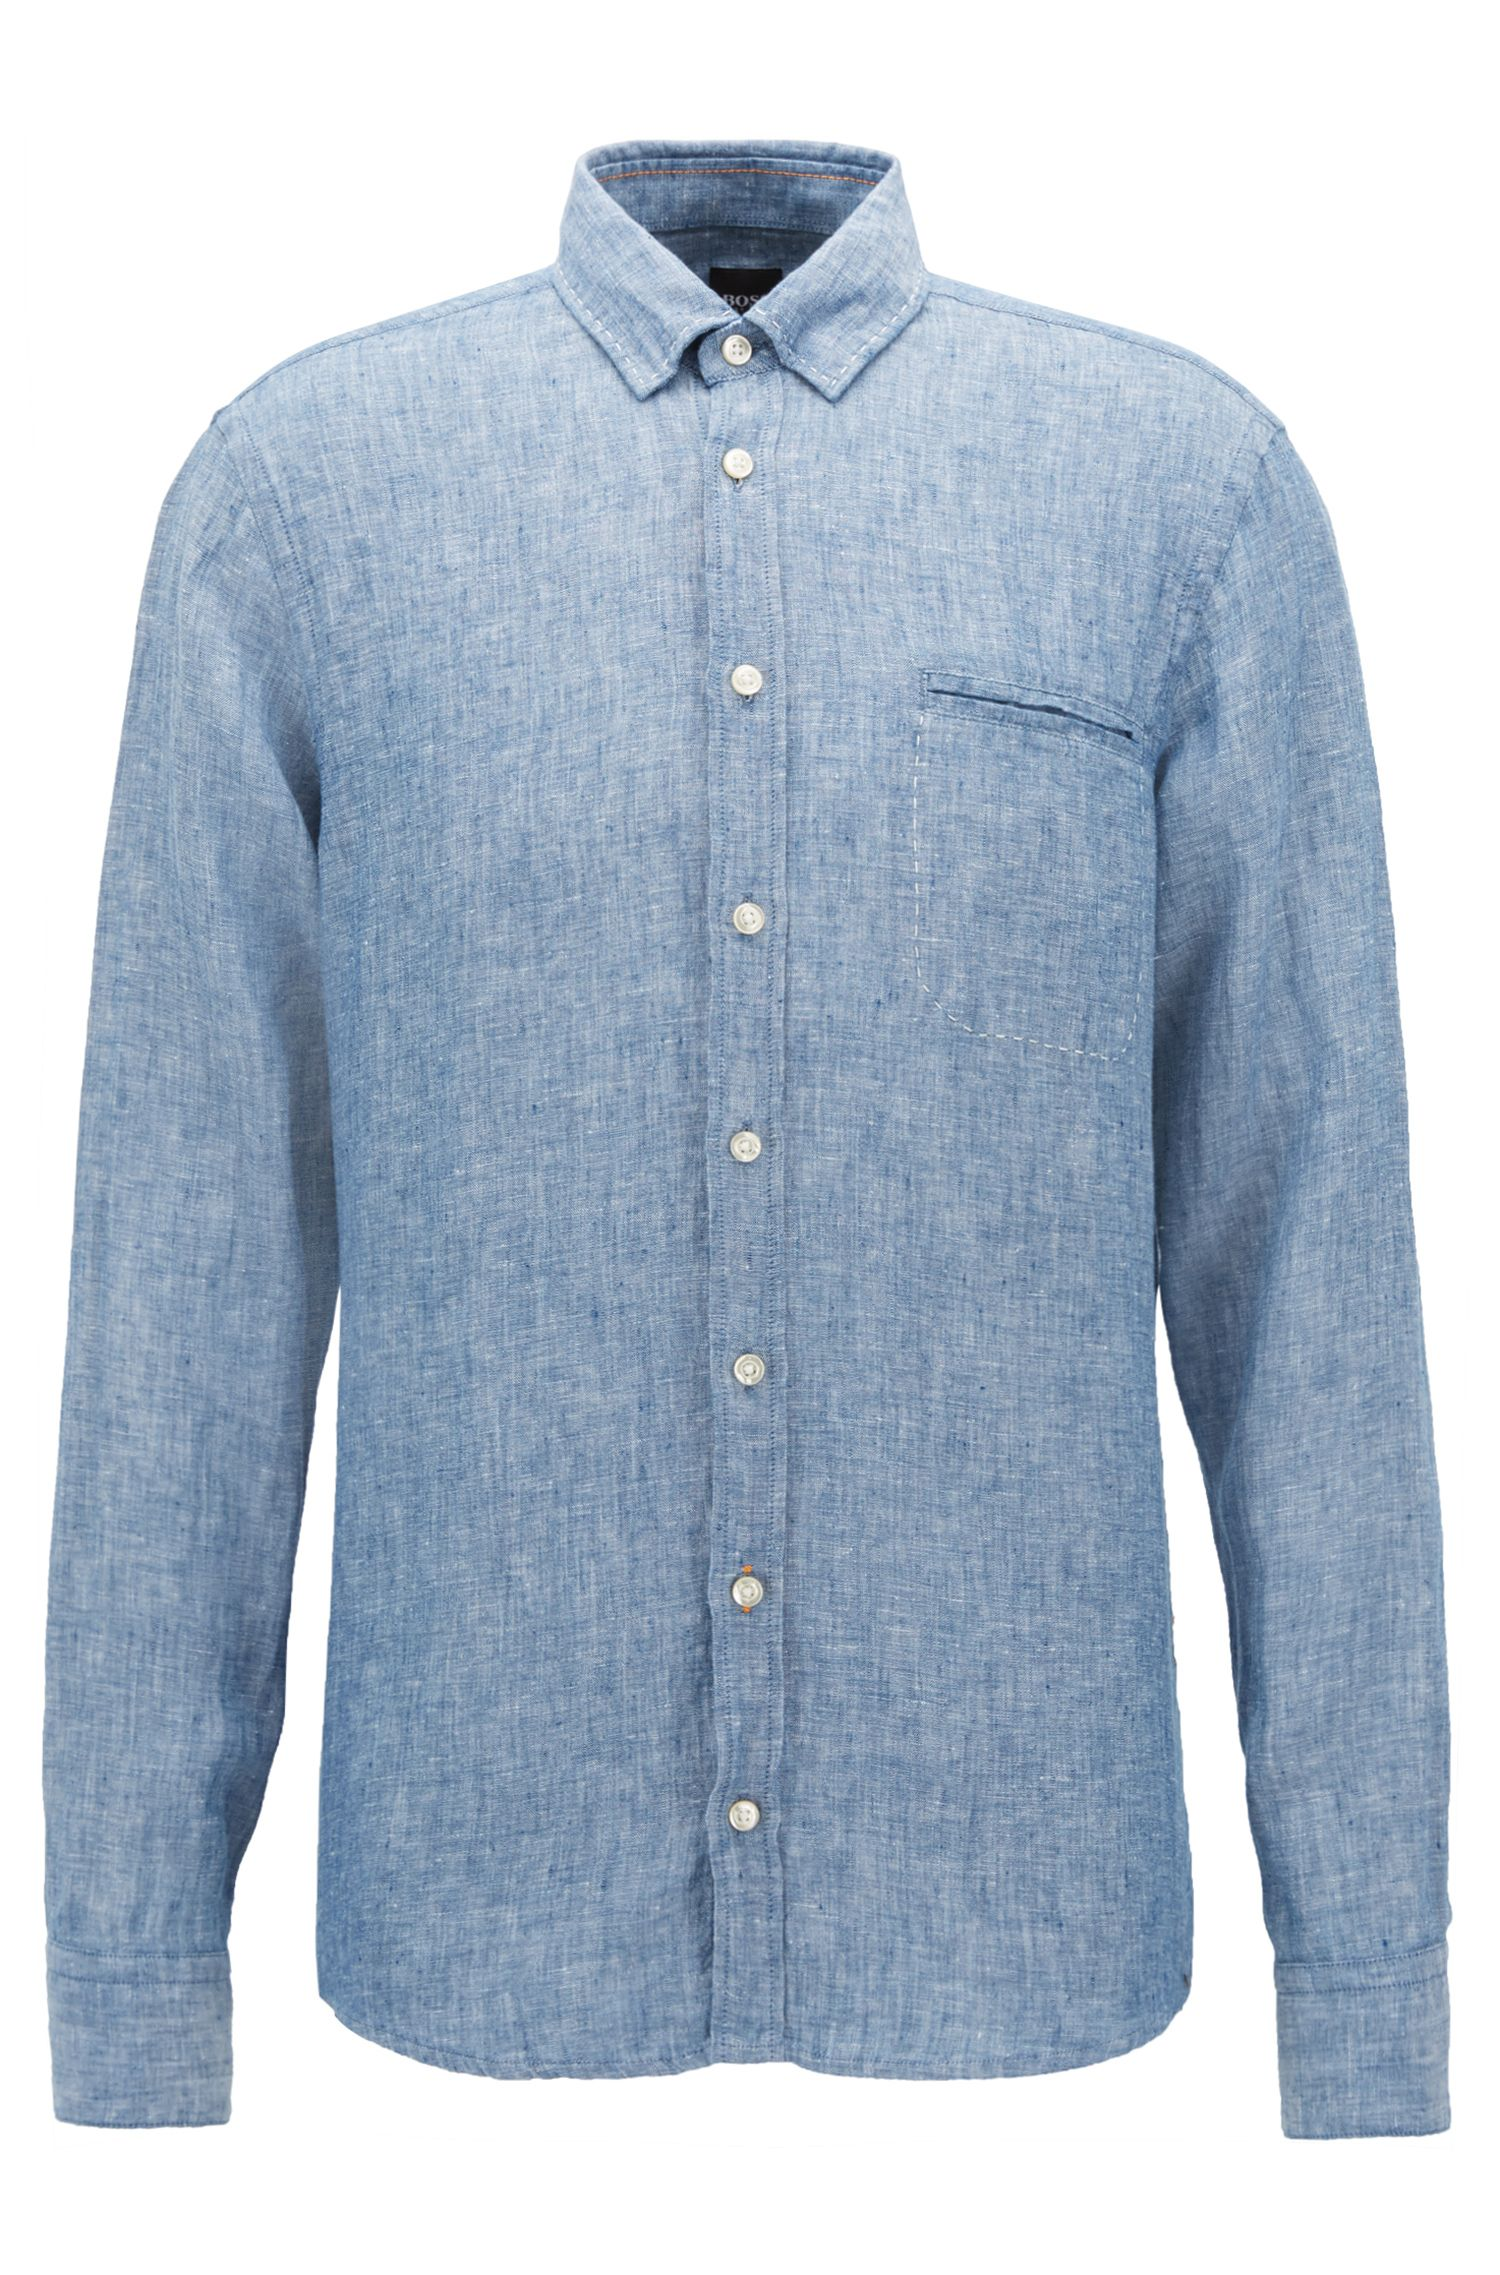 Regular-fit shirt in yarn-dyed linen chambray